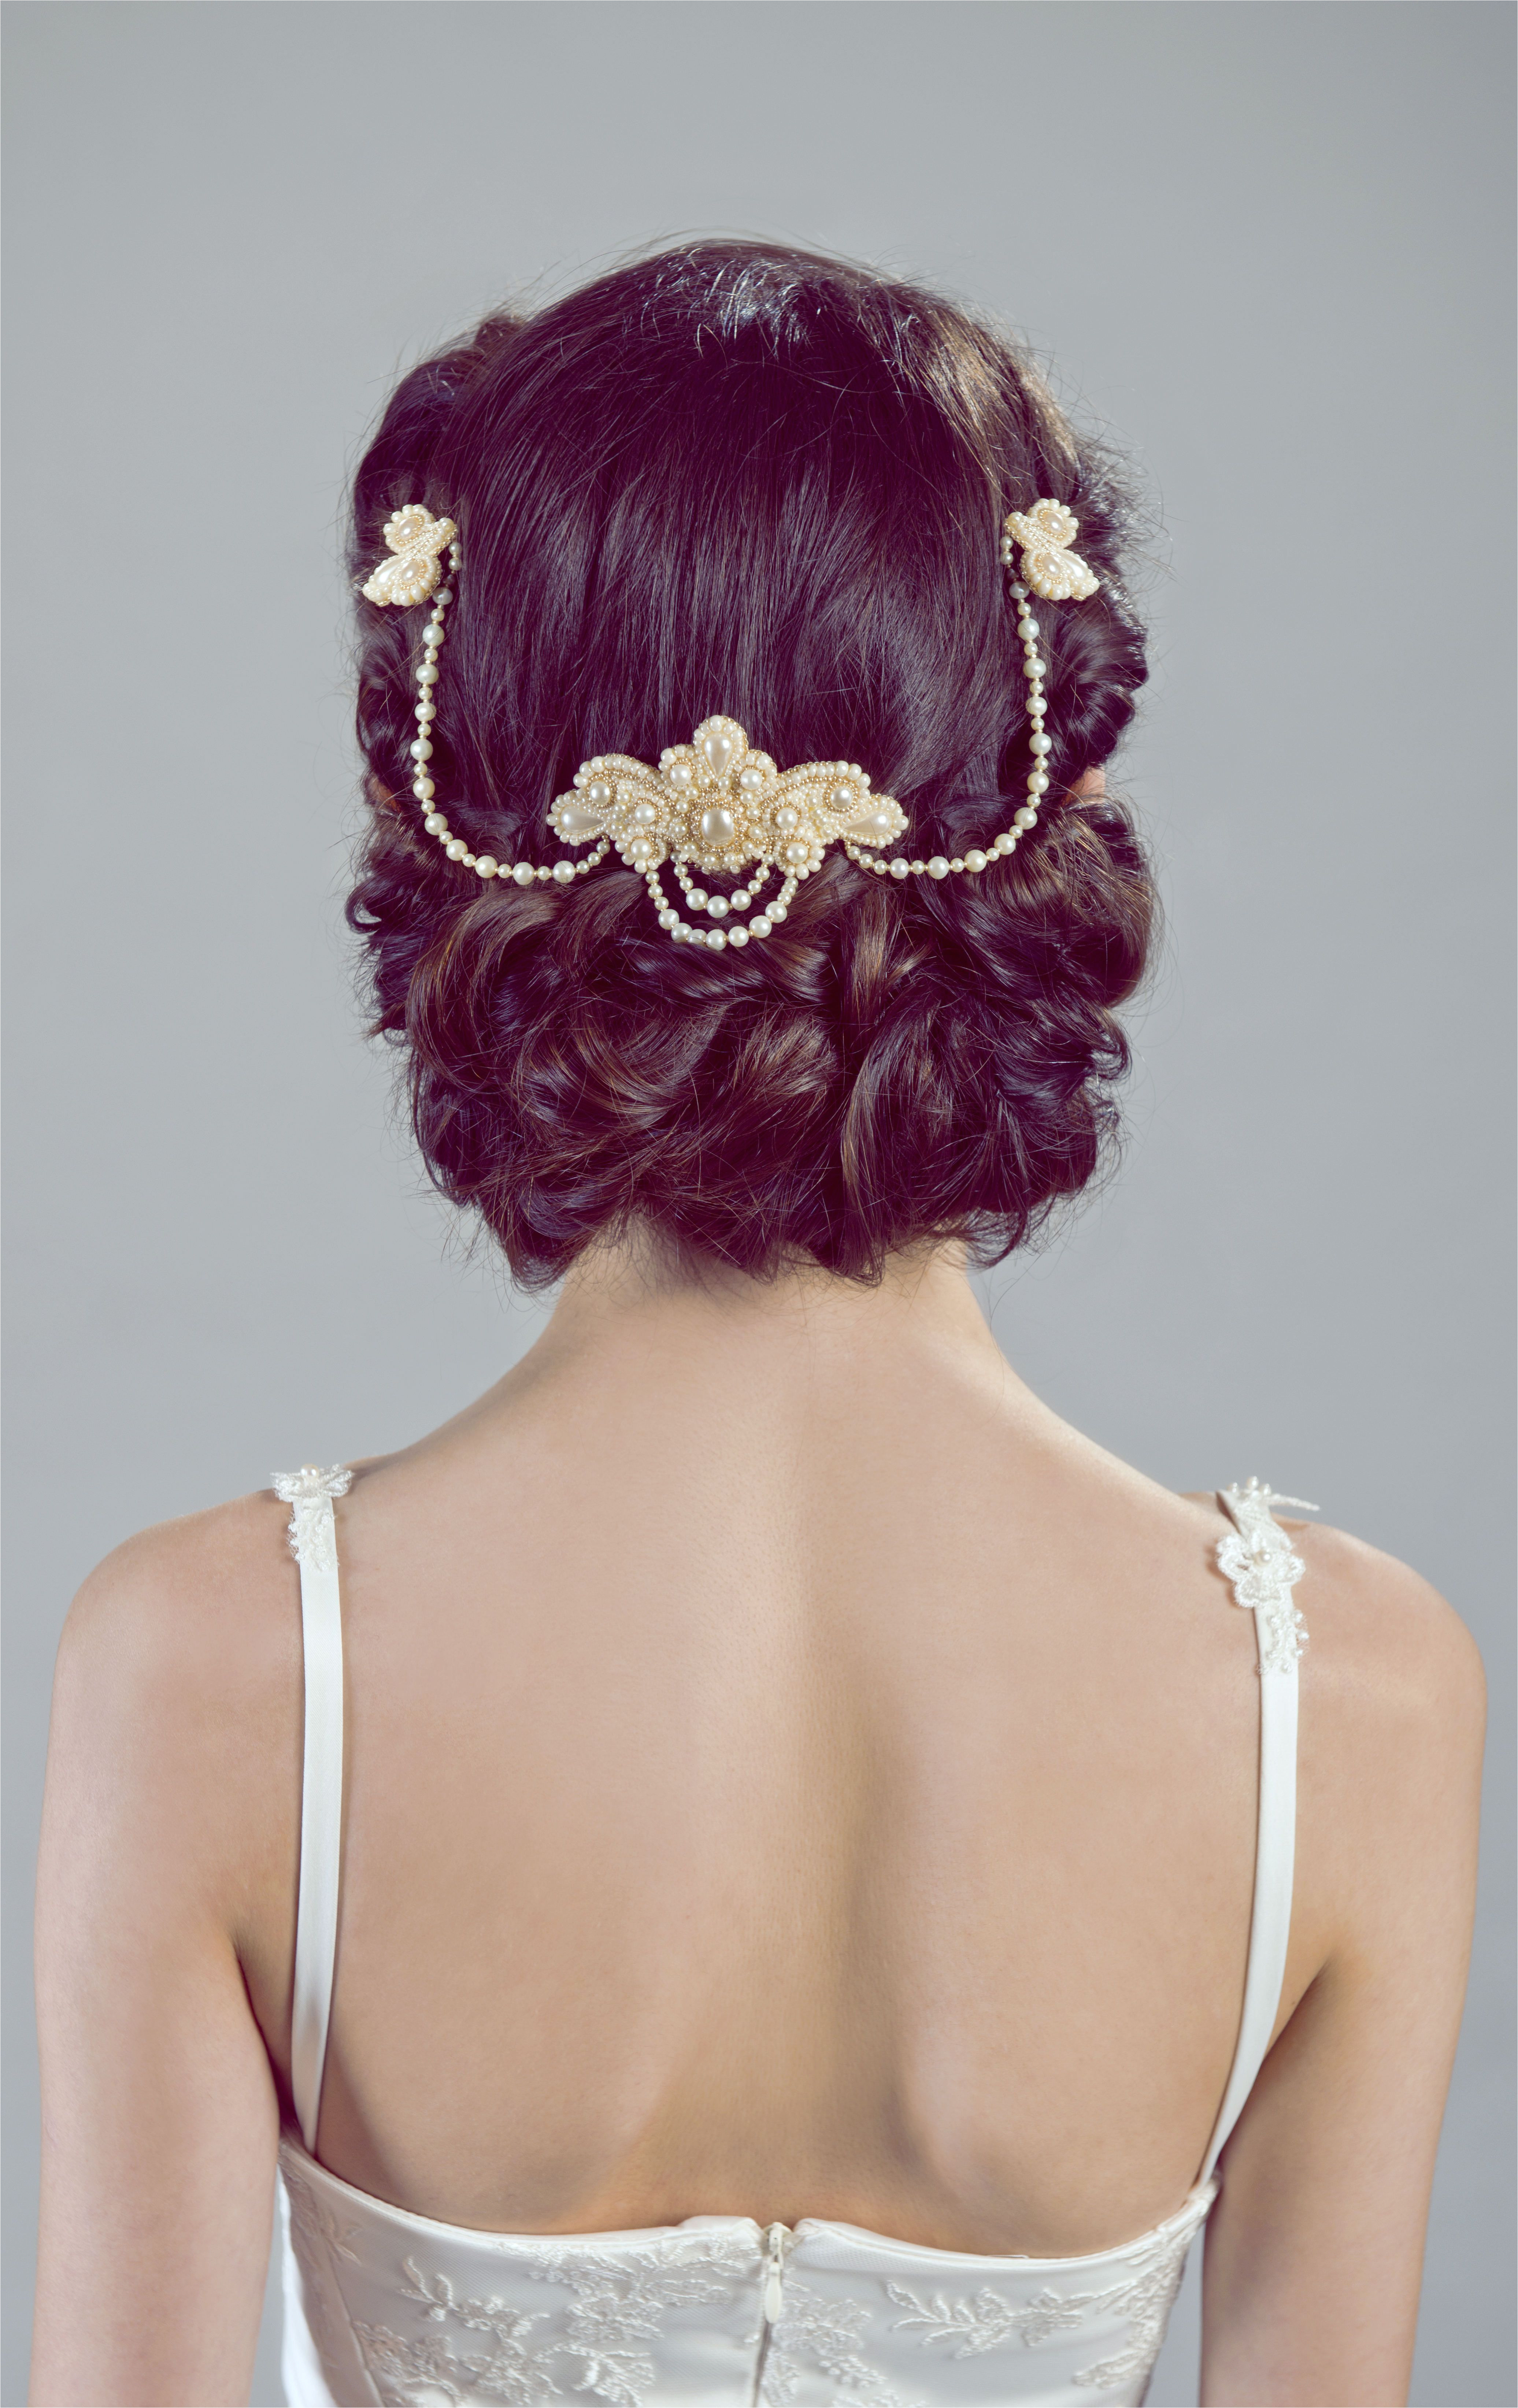 Lucrezia unique bridal headpiece jewelry real freshwater pearls vintage inspired renaissance princess